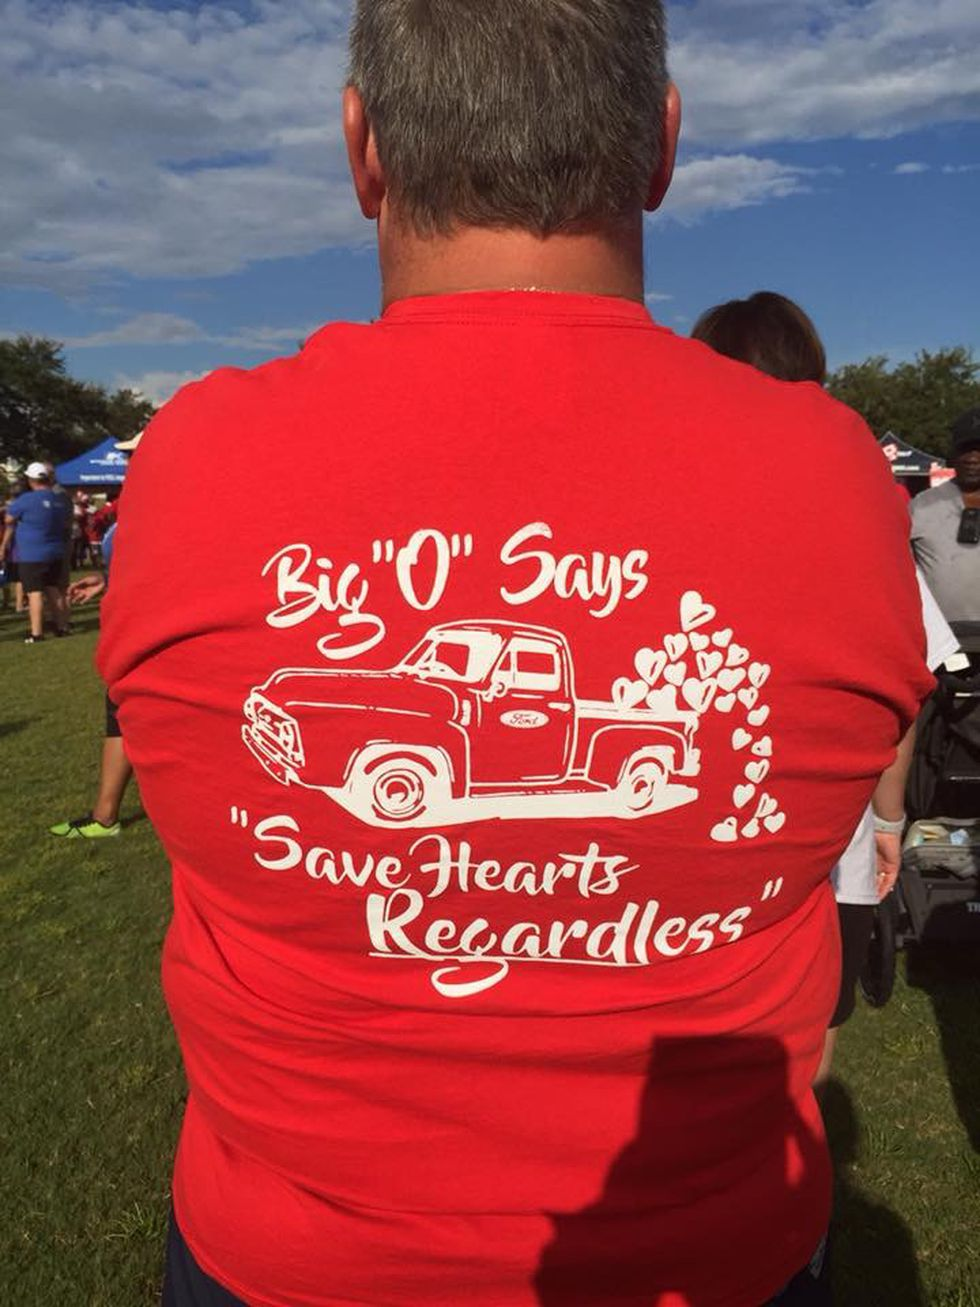 More than 3,000 people were expected to walk in the 25th annual Gulf Coast Heart Walk.